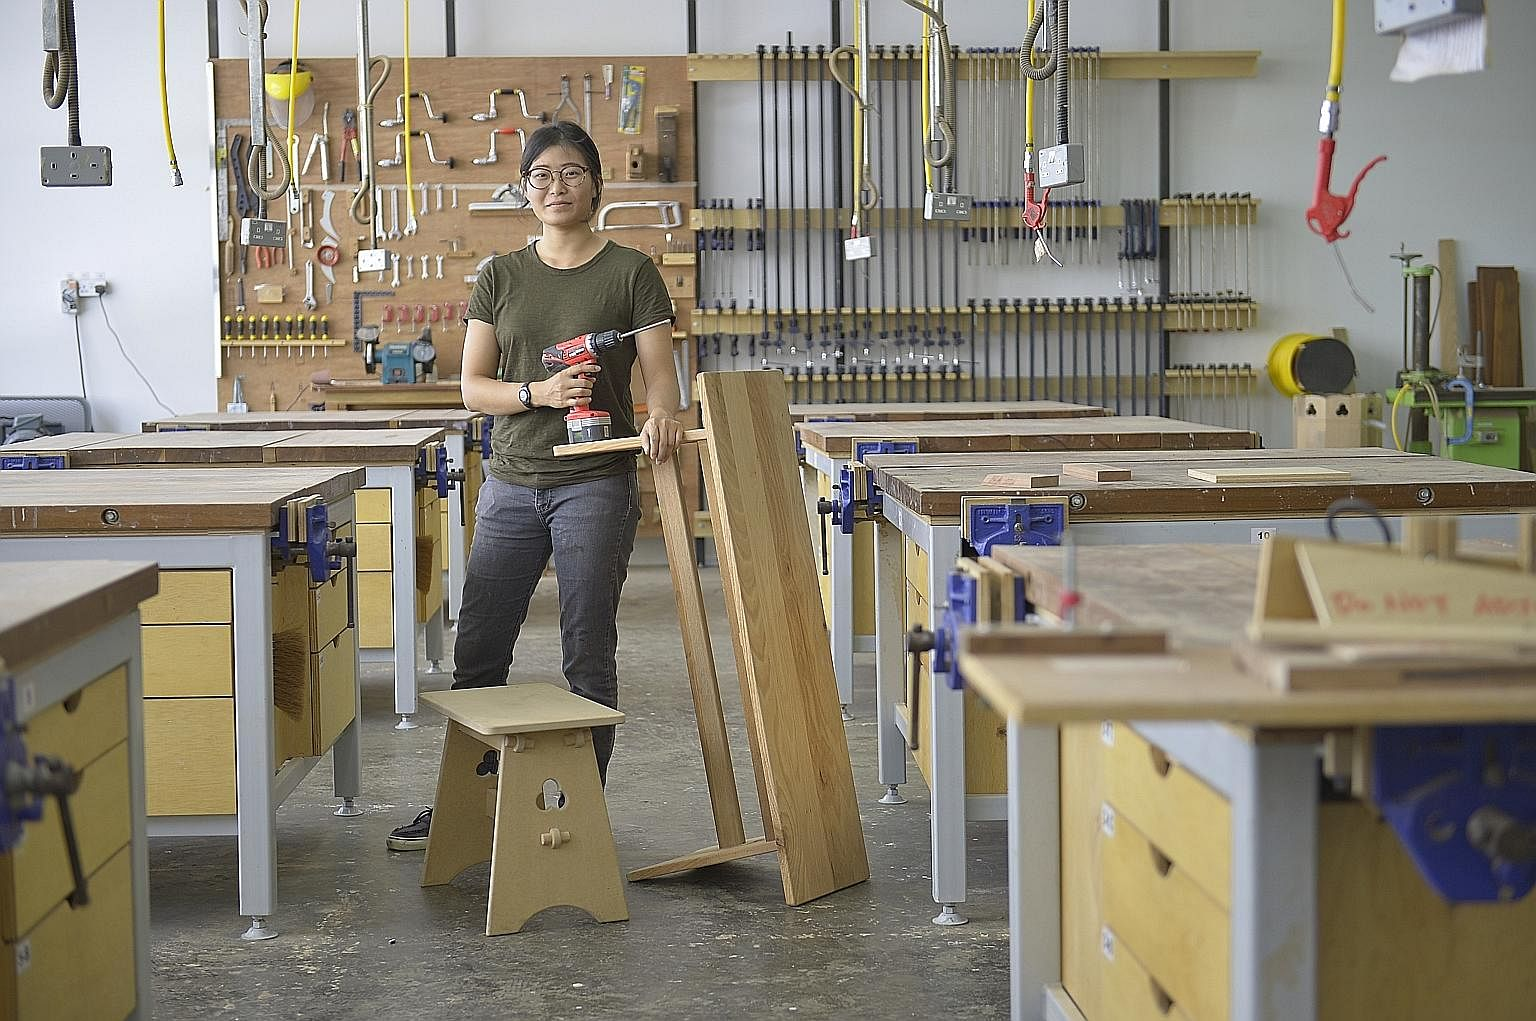 Ms Kwa Mei Jun at the Singapore Furniture Industries Council Institute's training workshop in Sungei Kadut. After her A levels, she did a one-year wood craftsmanship apprentice course run by the institute, where she worked in a furniture factory and